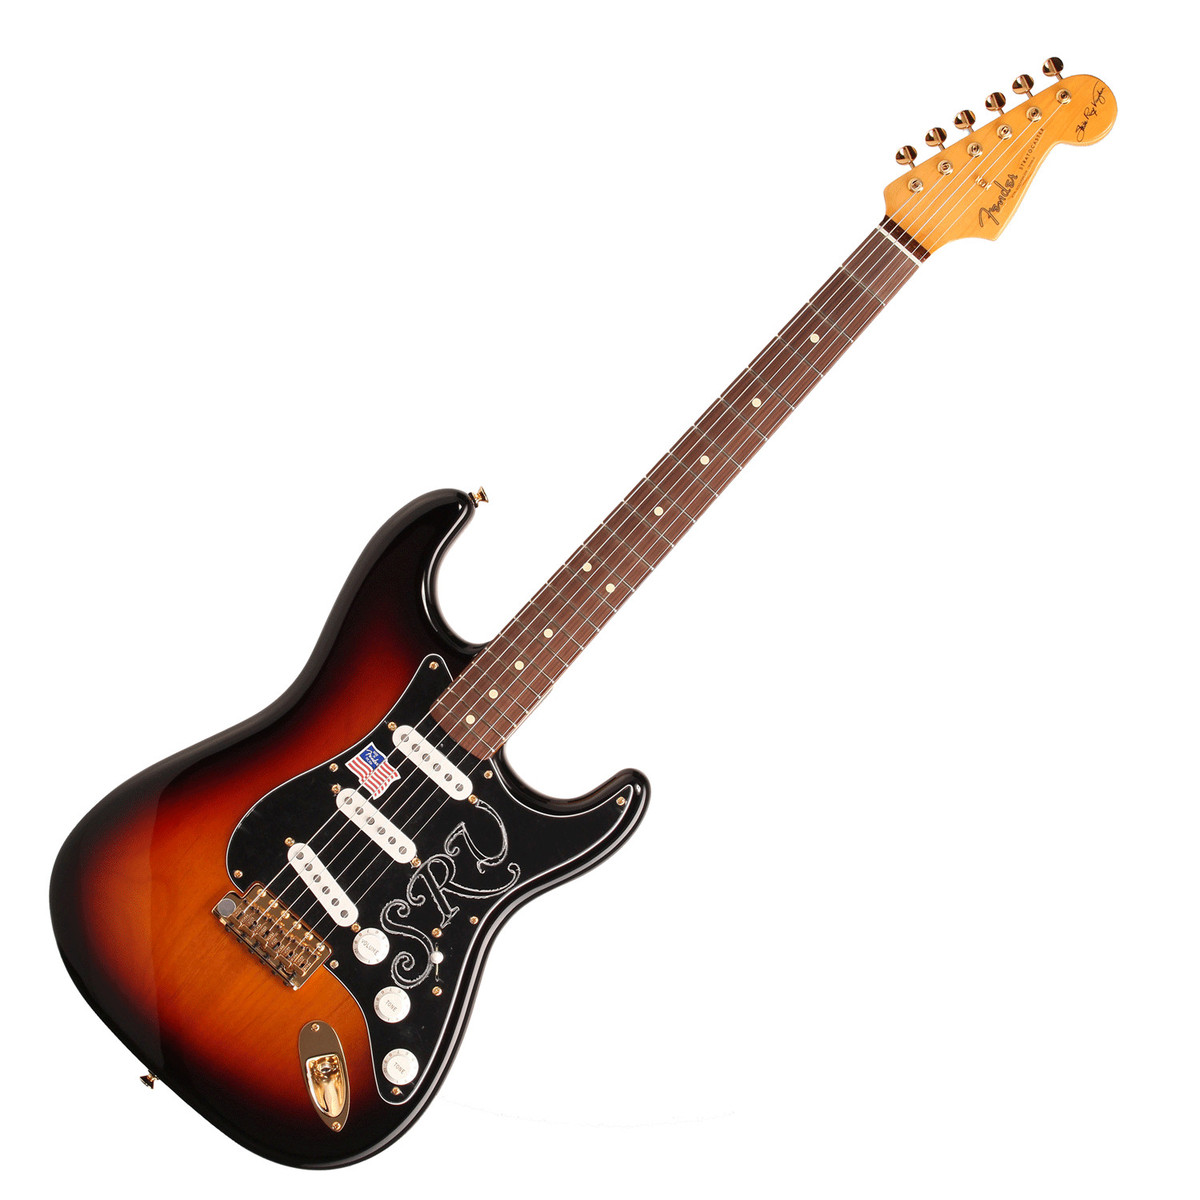 dating srv stratocaster We will be stocking every fender pau ferro and ebony neck model for all  a  fantastic alternate we currently use on the srv signature strat  the changeover  will be somewhat fluid in the market, there is no set date at this time.